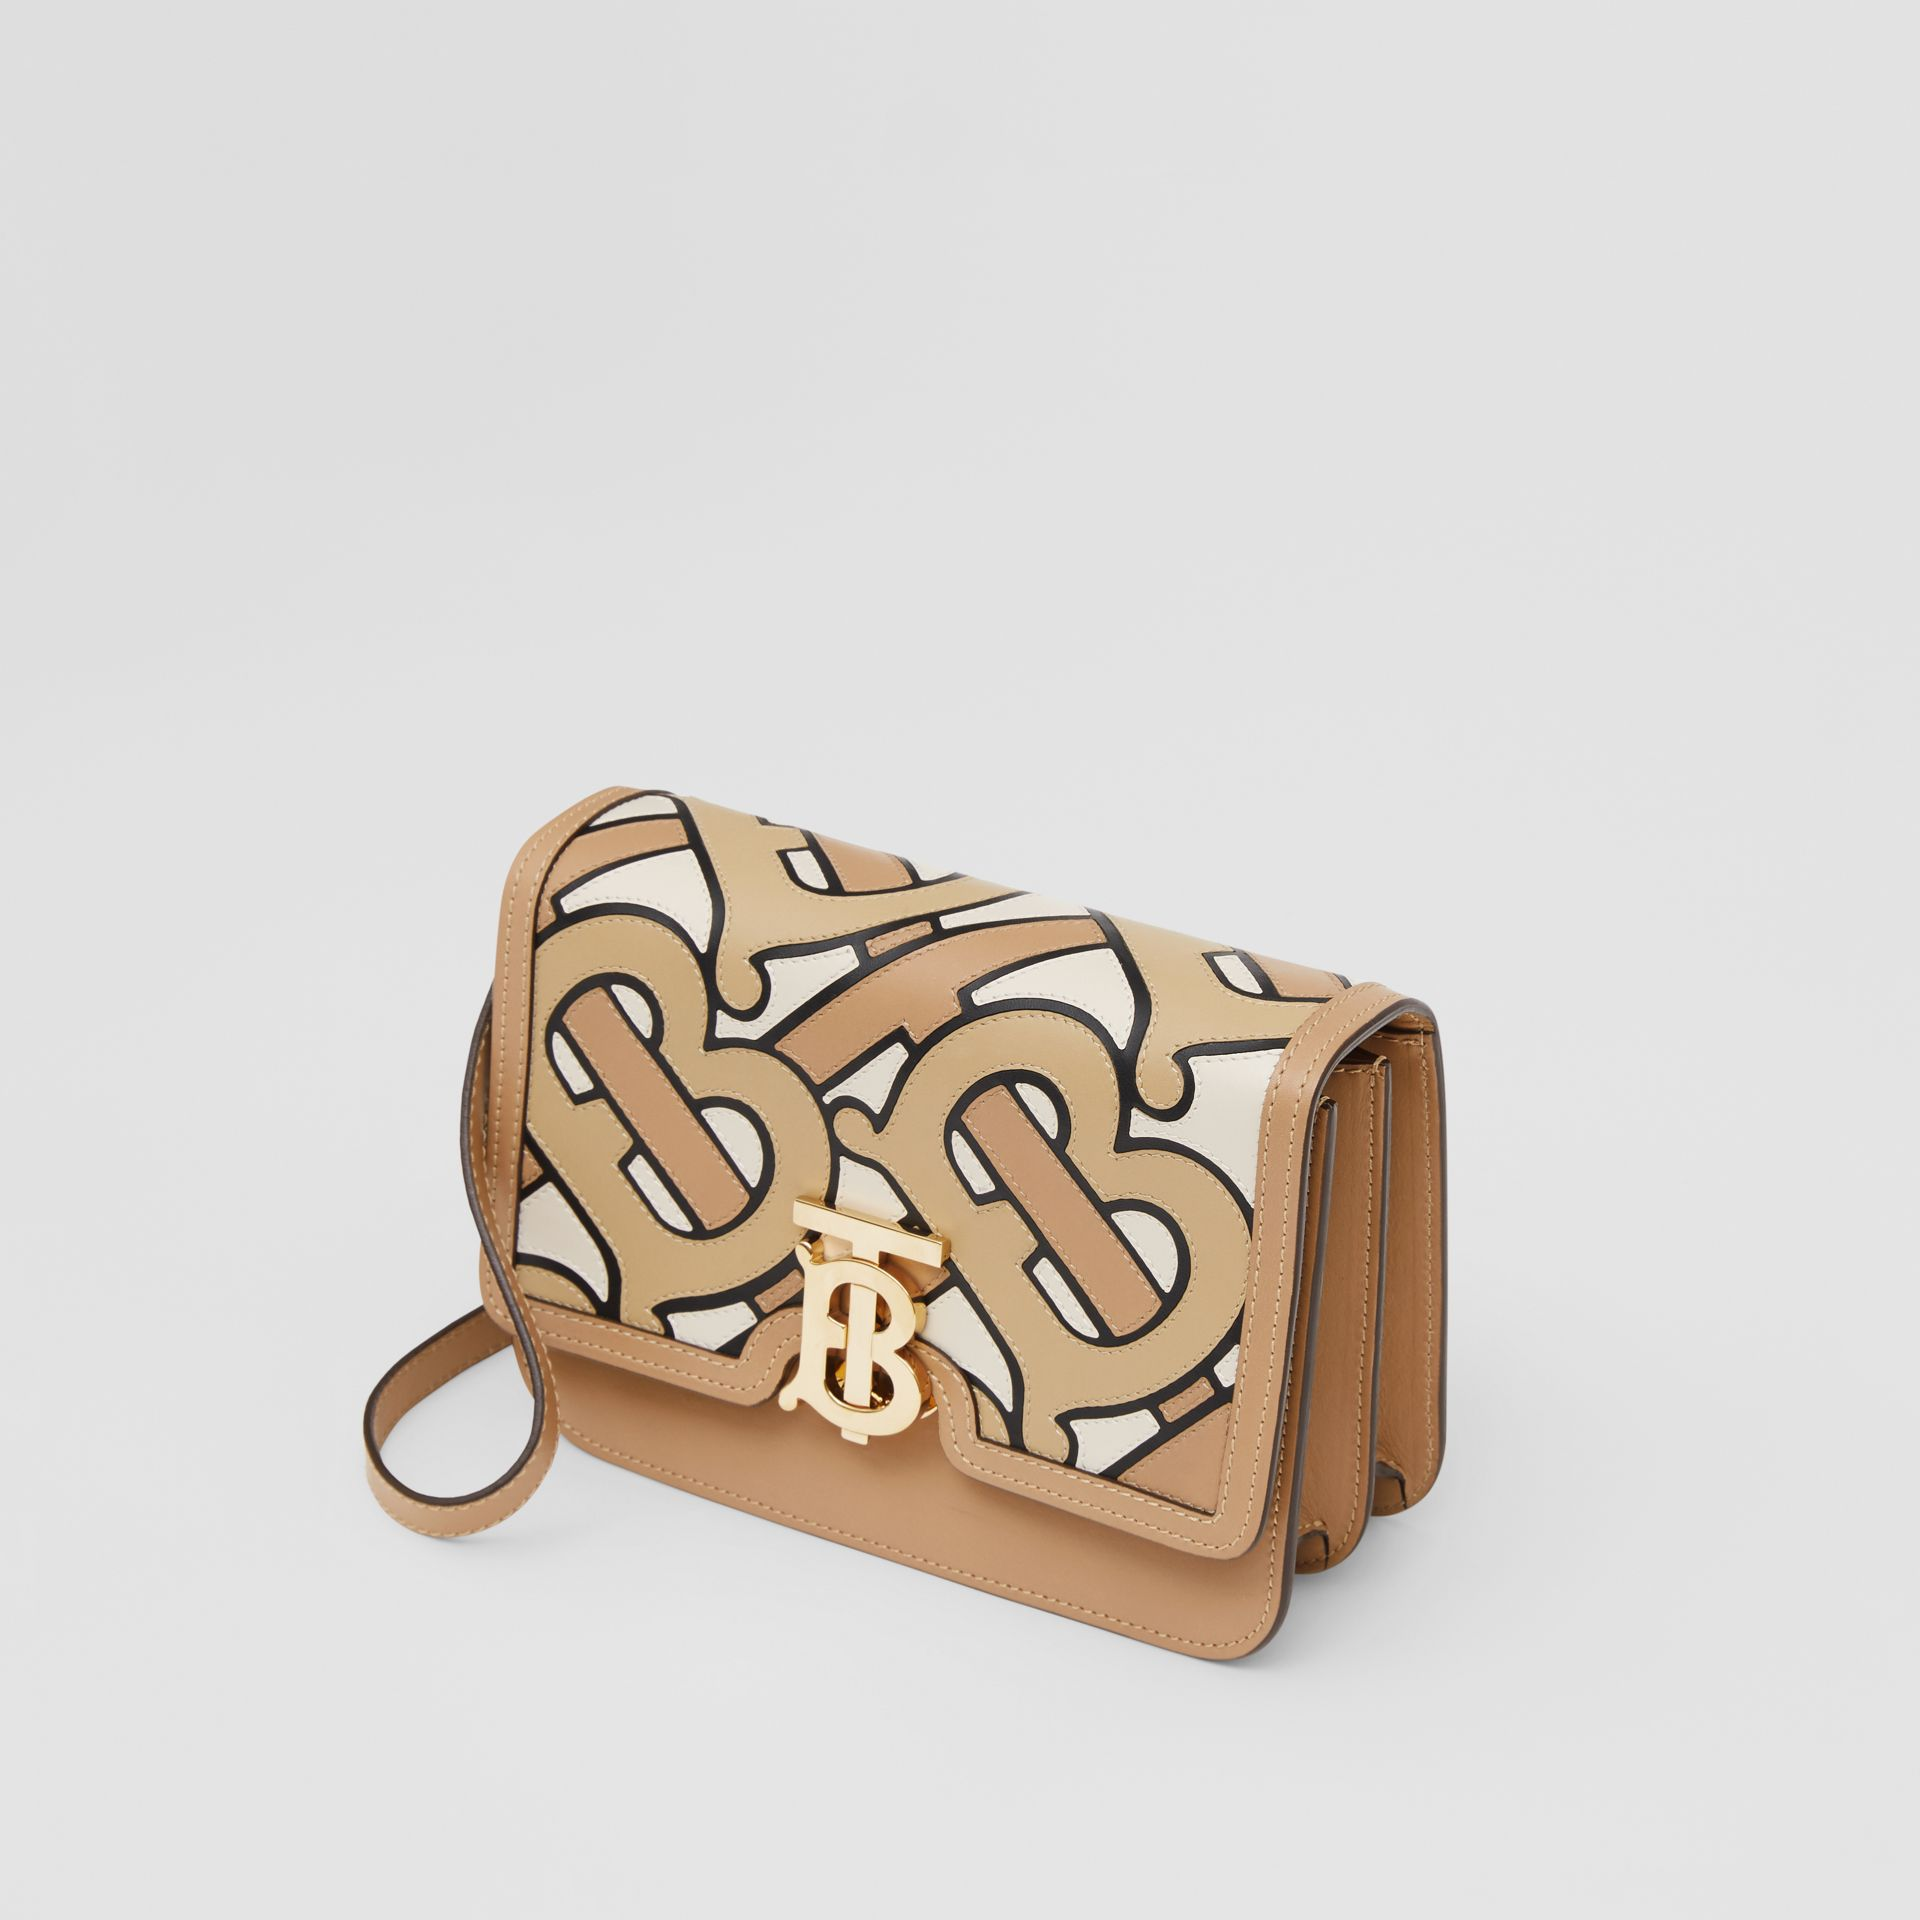 Small Monogram Intarsia Leather TB Bag in Beige - Women | Burberry United Kingdom - gallery image 3